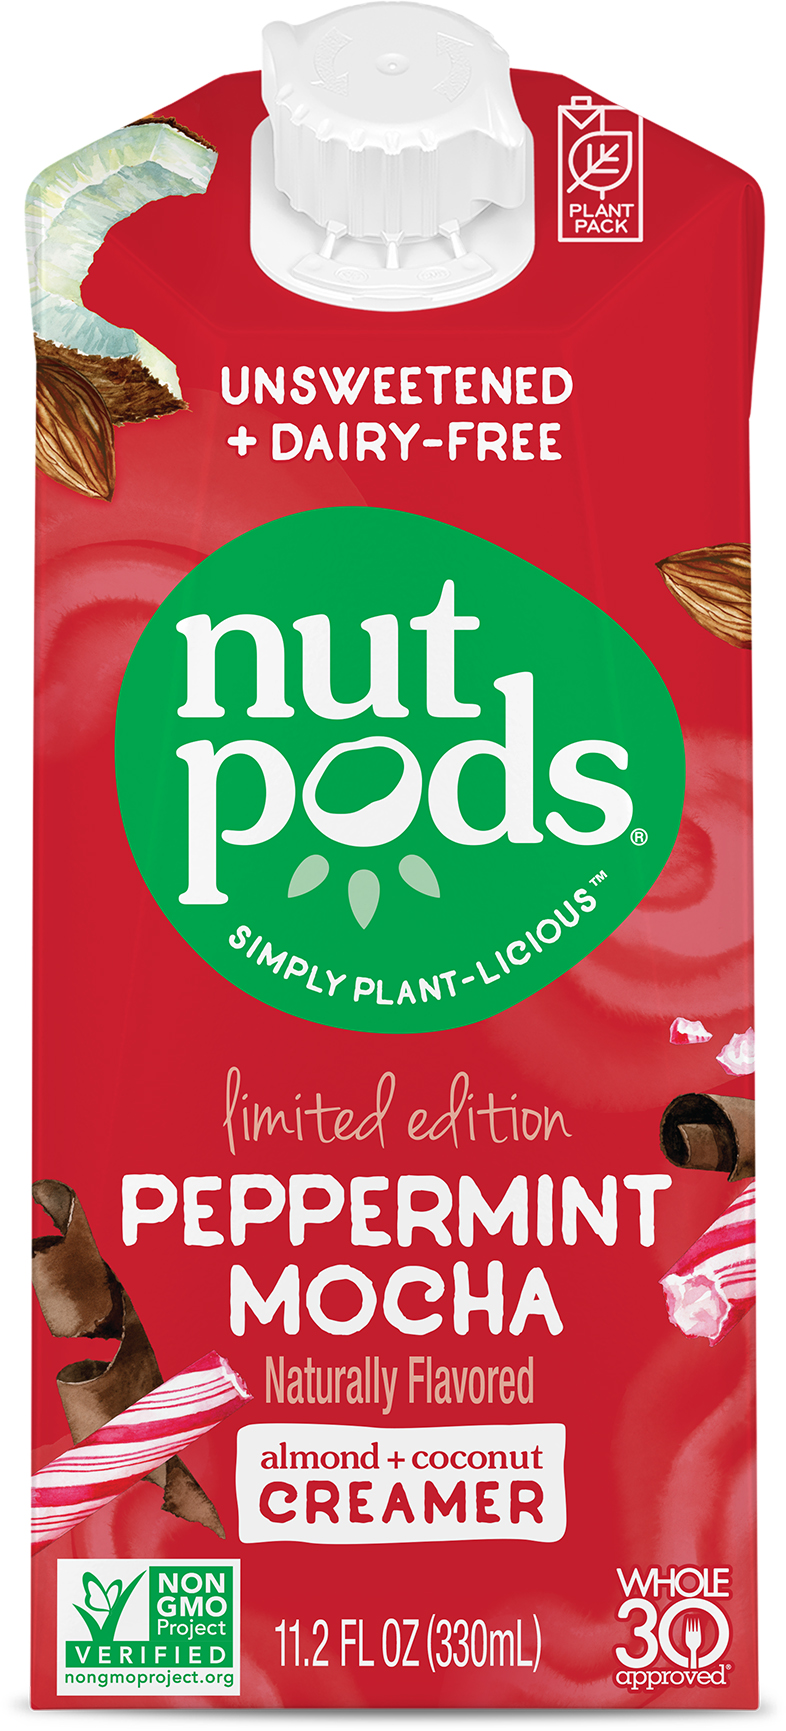 nutpods: Photo of Peppermint Mocha dairy-free creamer - nutpods (uploaded by company)